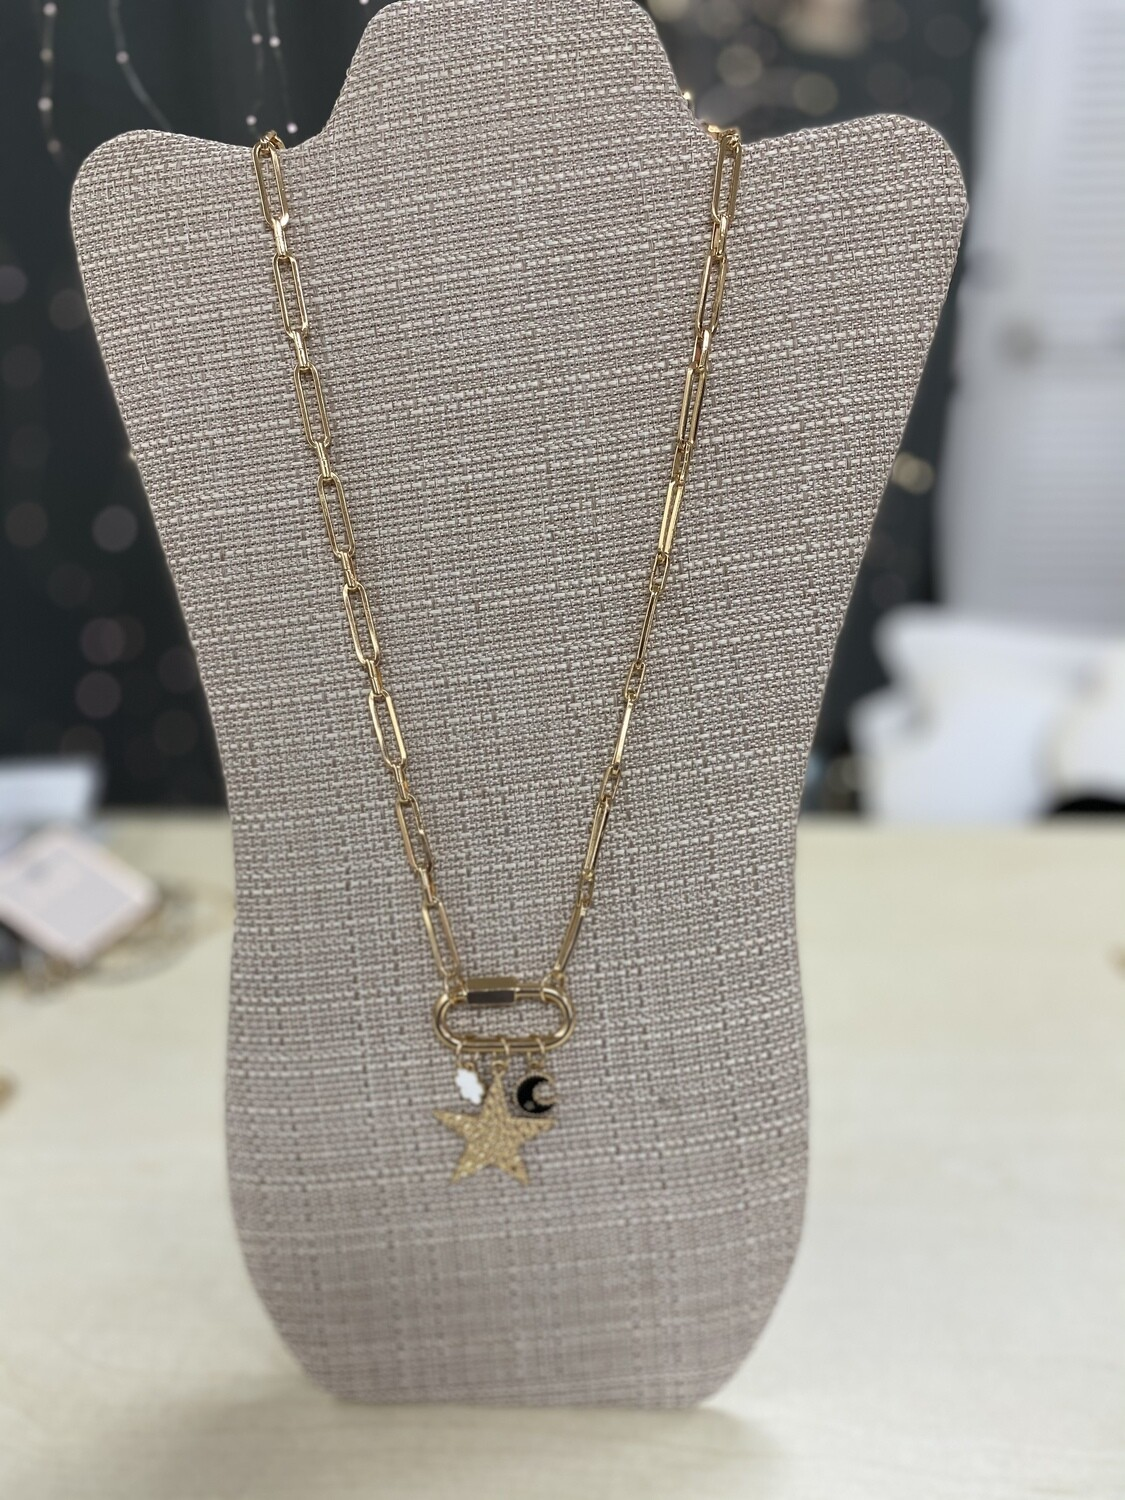 Gold Long Chain Necklace with Charms